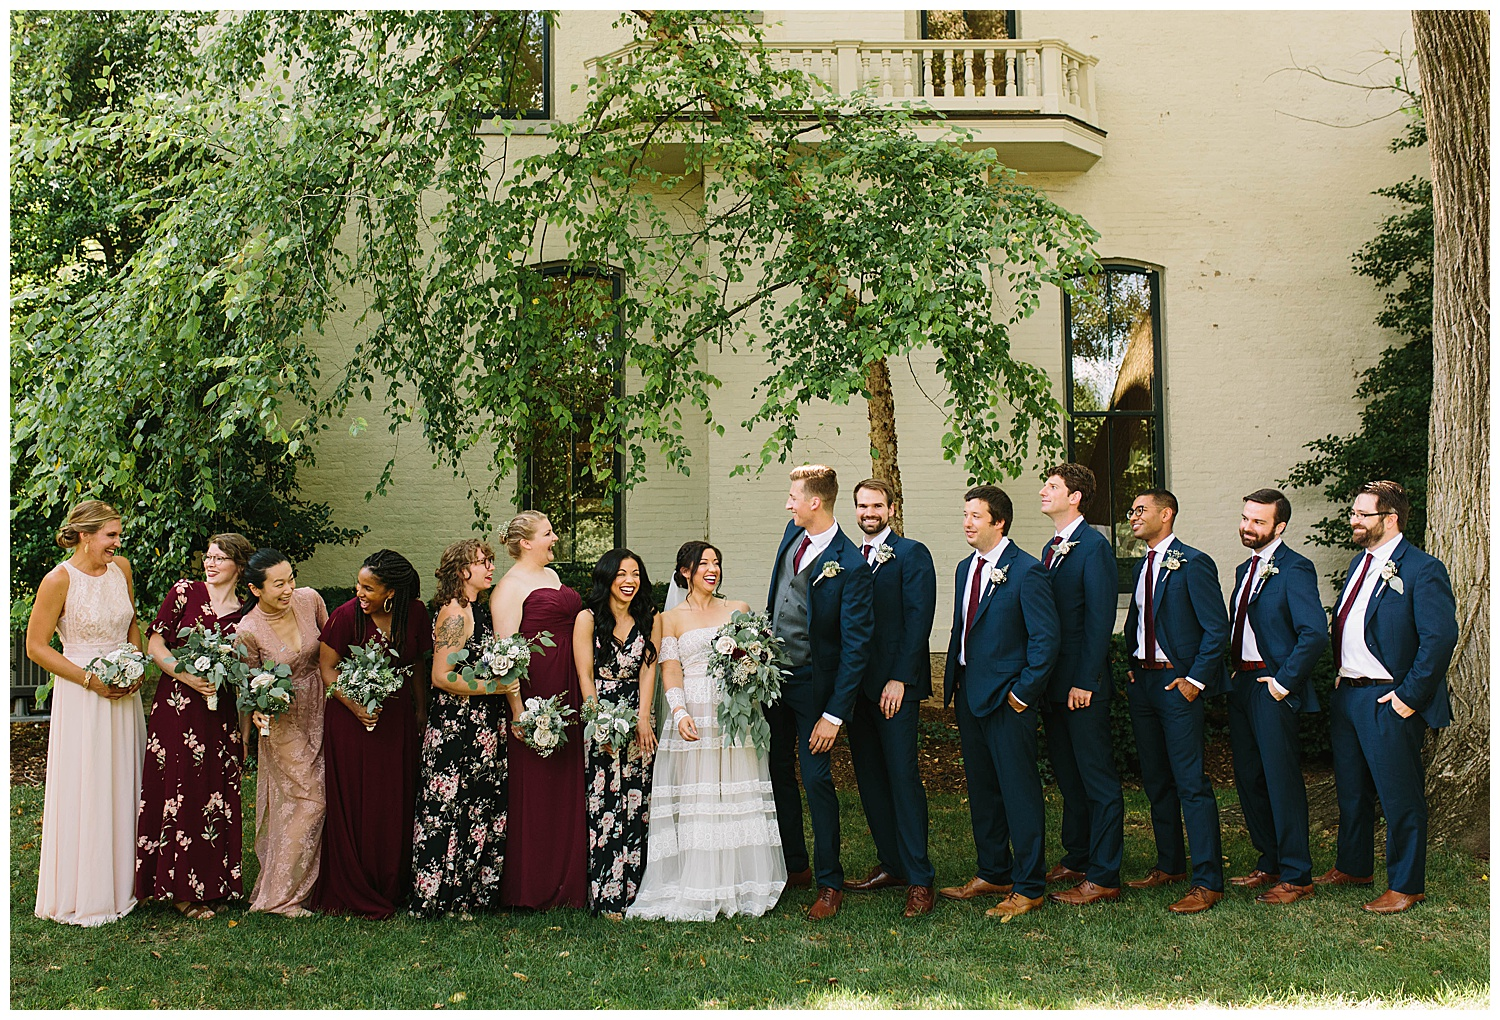 trent.and.kendra.photography.wedding.peterson.dumesnil.house-73.jpg